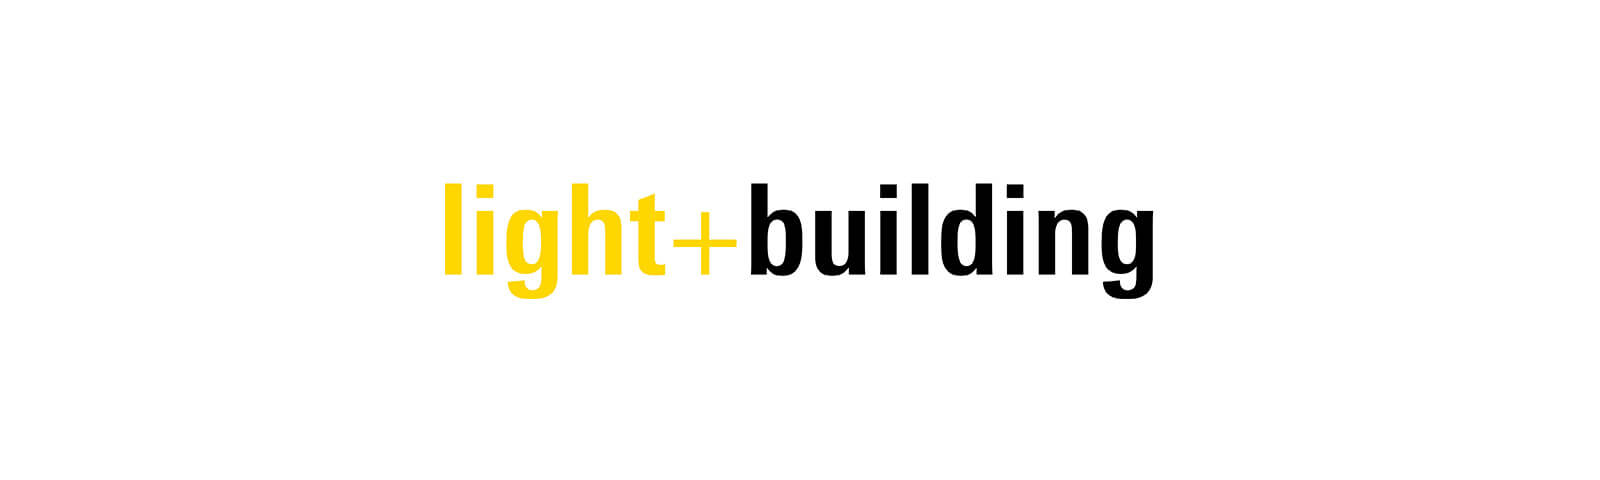 Light + Building 2016 gallery image